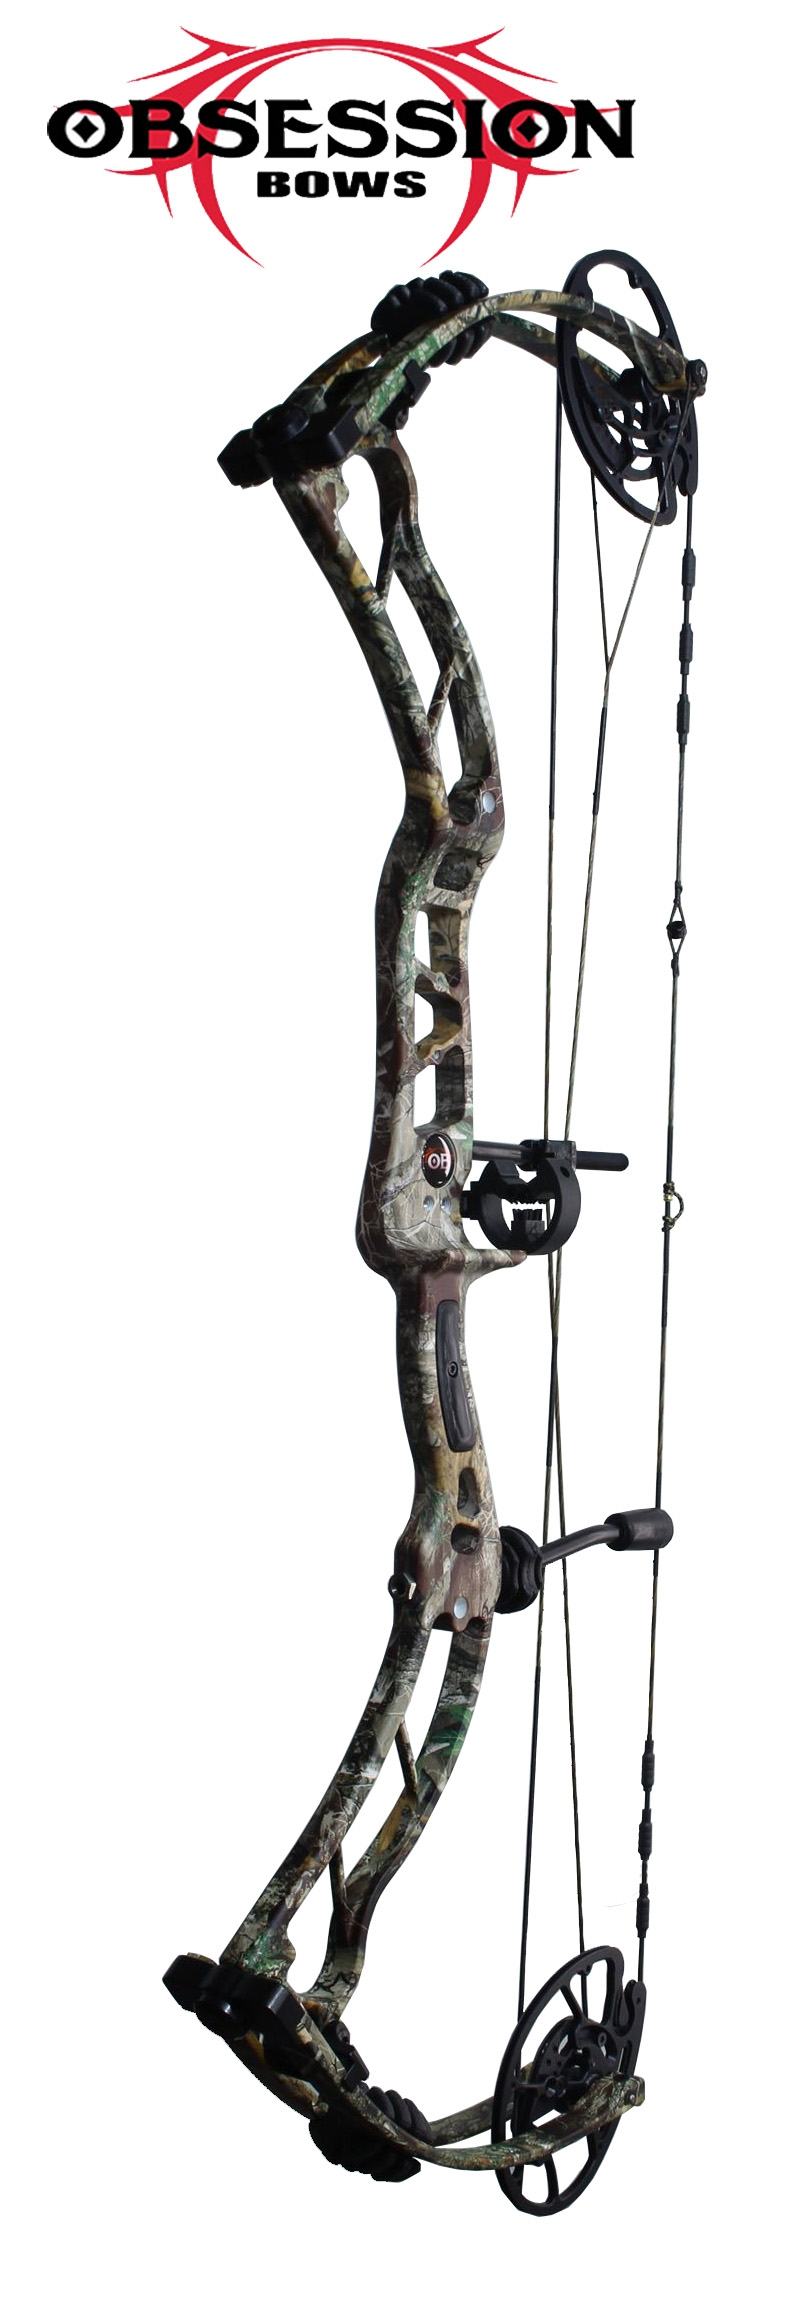 2018 obsession turmoil RZ bow plus package